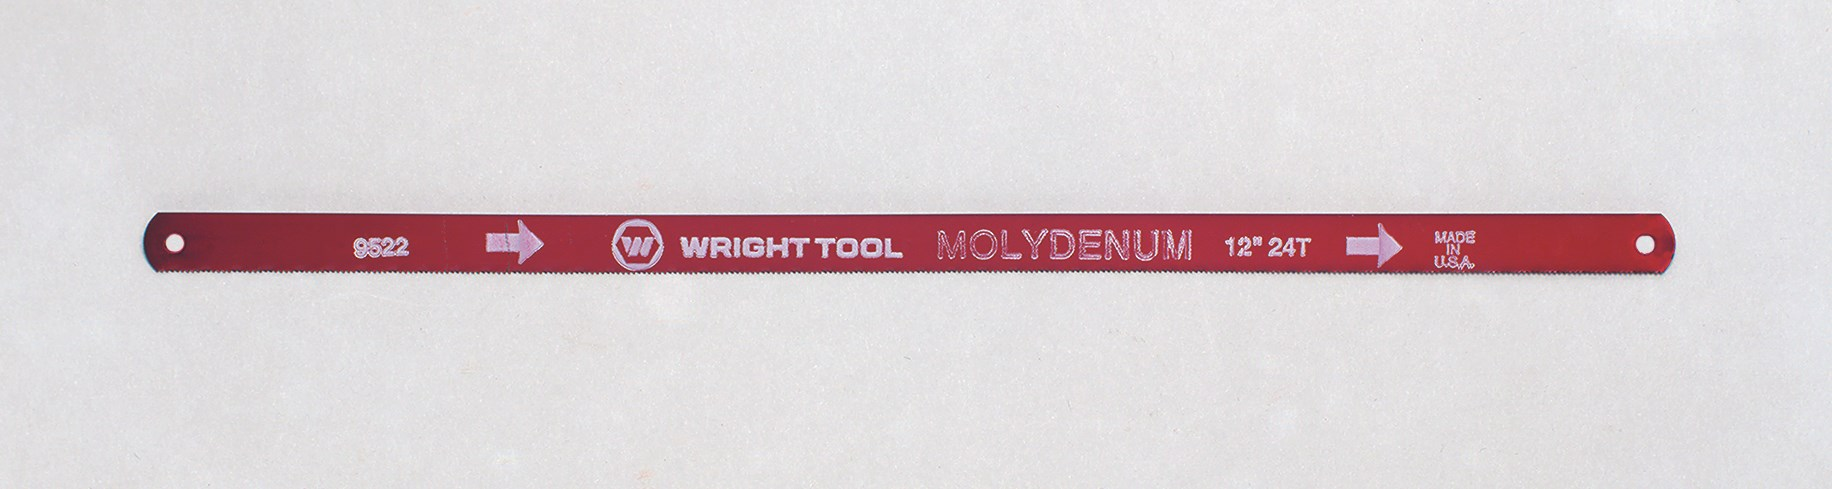 Wright Tool 9522 12-inch Bi-Metal 20/24T (10 Pack)